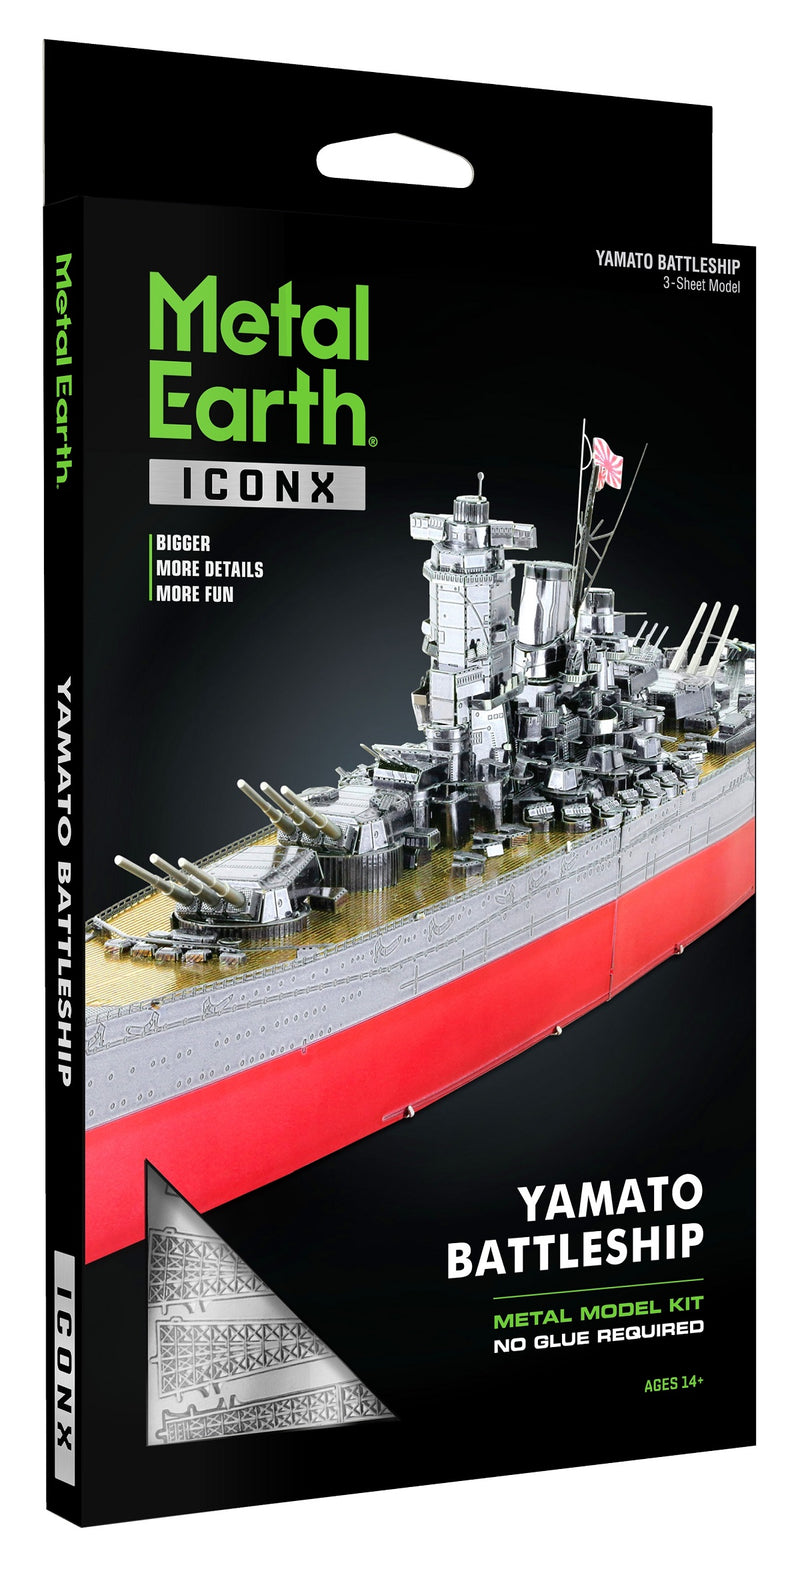 IJN Yamato Battleship Metal Earth Iconx Model Kit Box Front